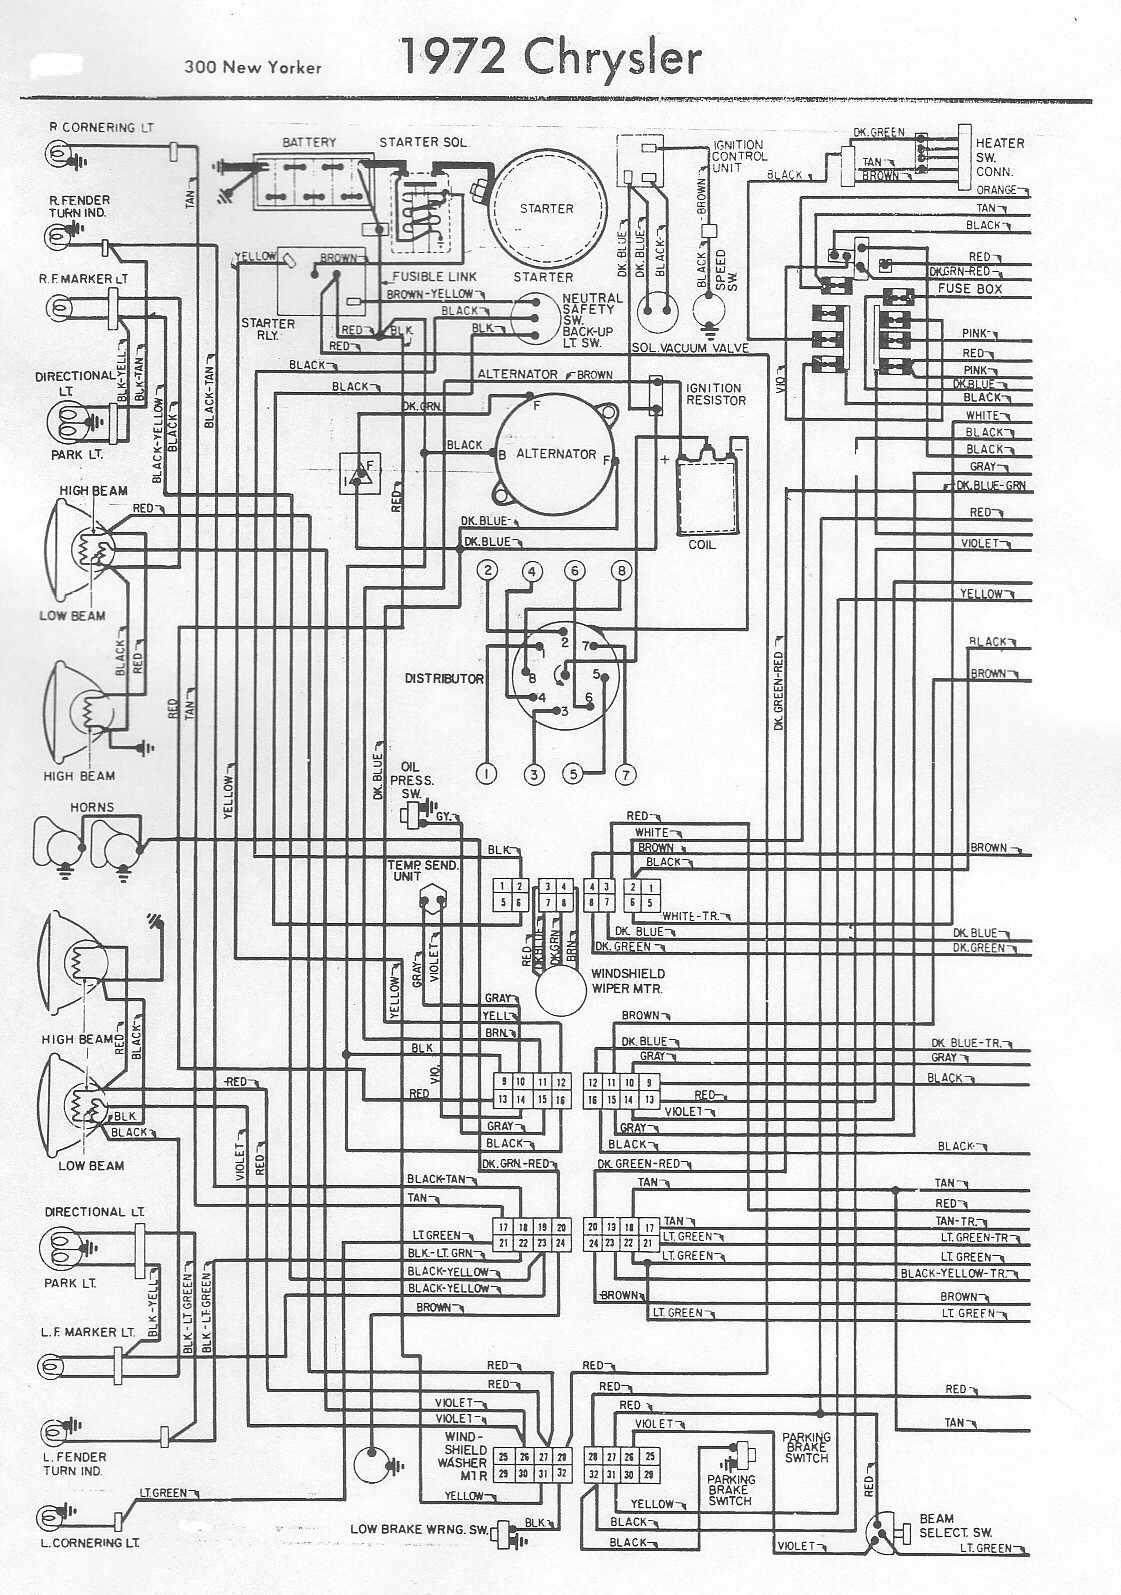 72 plymouth wiring diagram plymouth parts diagrams plymouth rh banyan palace com Automatic Transmission Diagram Dodge Transmission Diagram